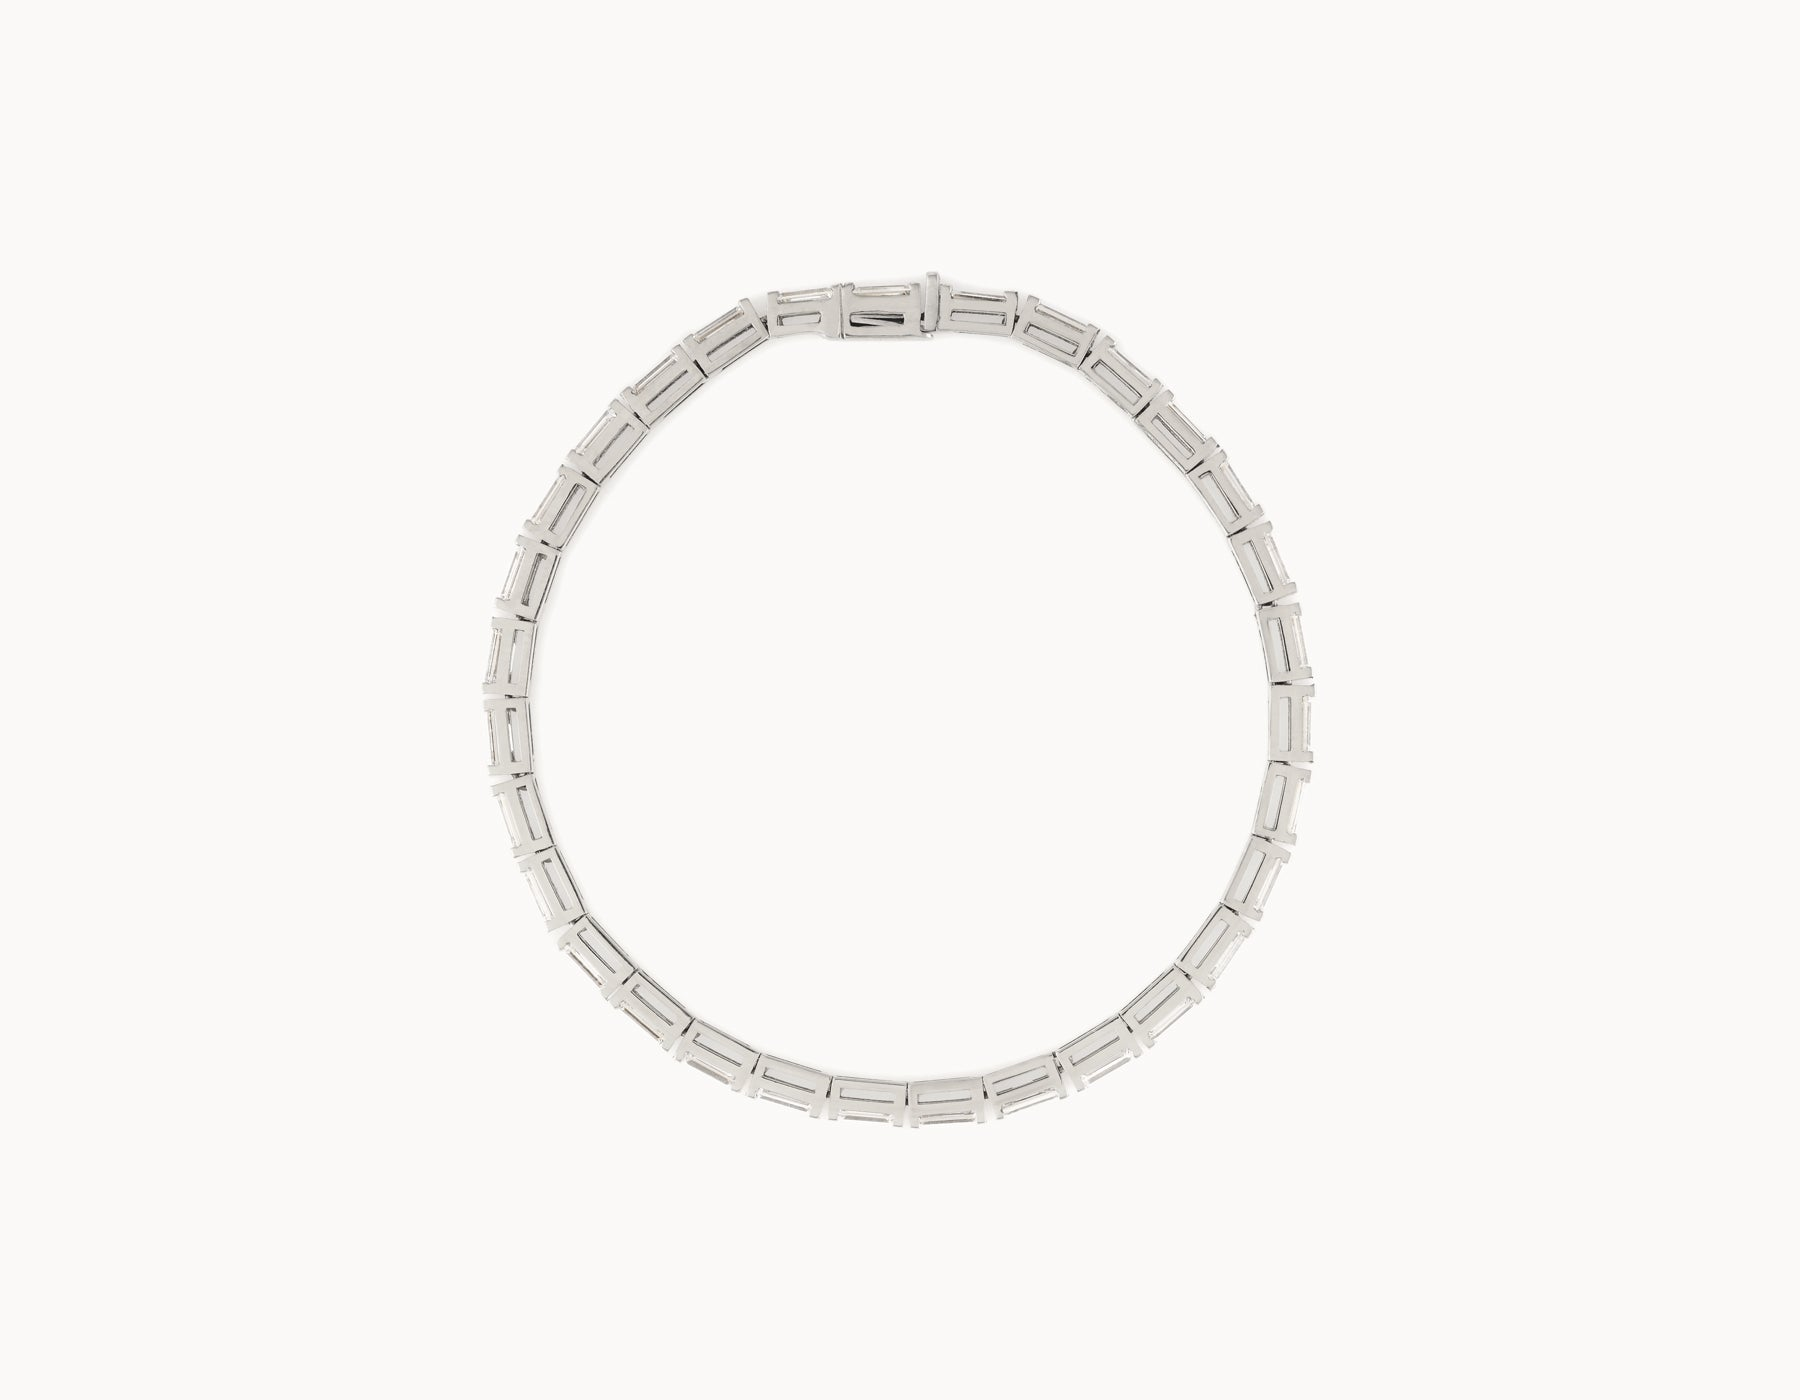 tennis com by buyjools pdp rsp johnlewis jenny john main lewis online bracelet brown at jools round